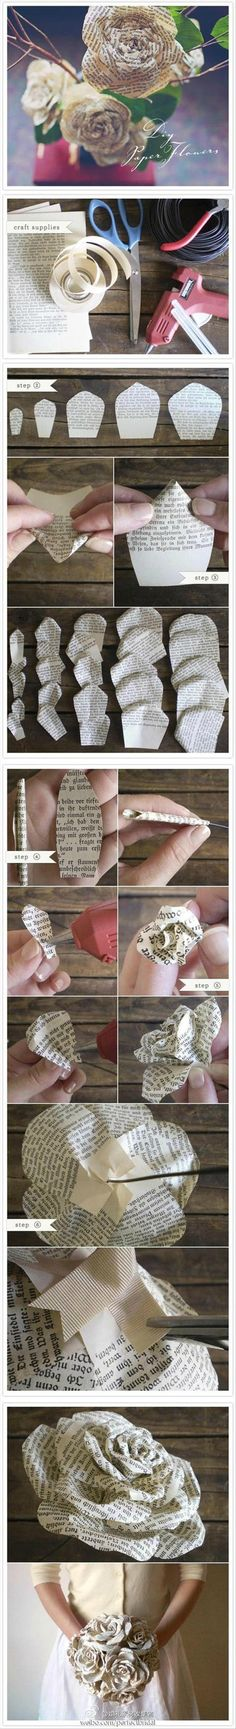 How to make paper flowers - Imgur